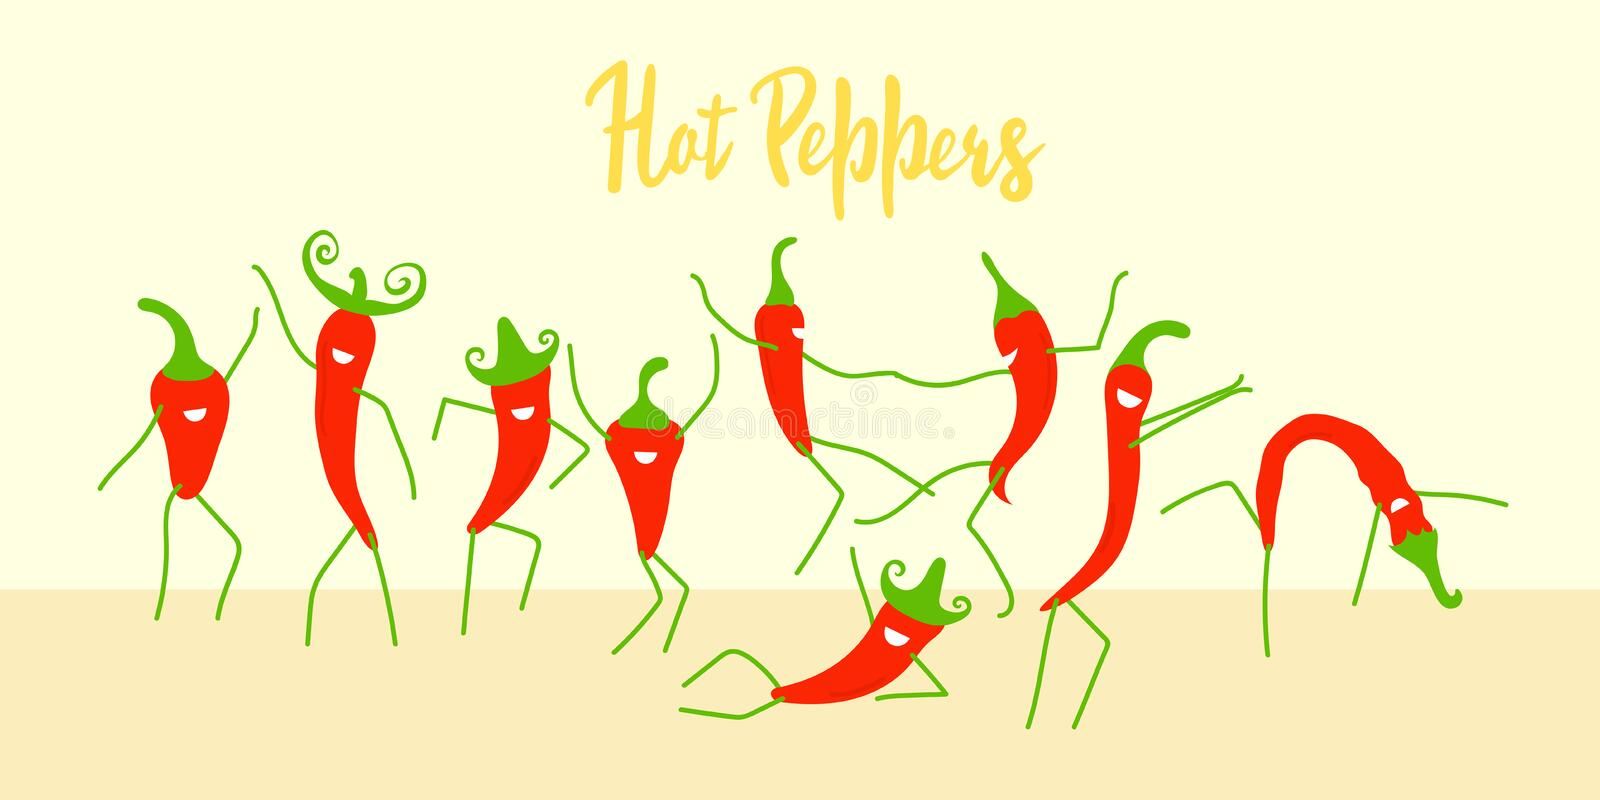 Funny cartoon chili peppers dancing. Modern flat design. Positive characters are suitable for festivals, hot parties, posters and royalty free stock image